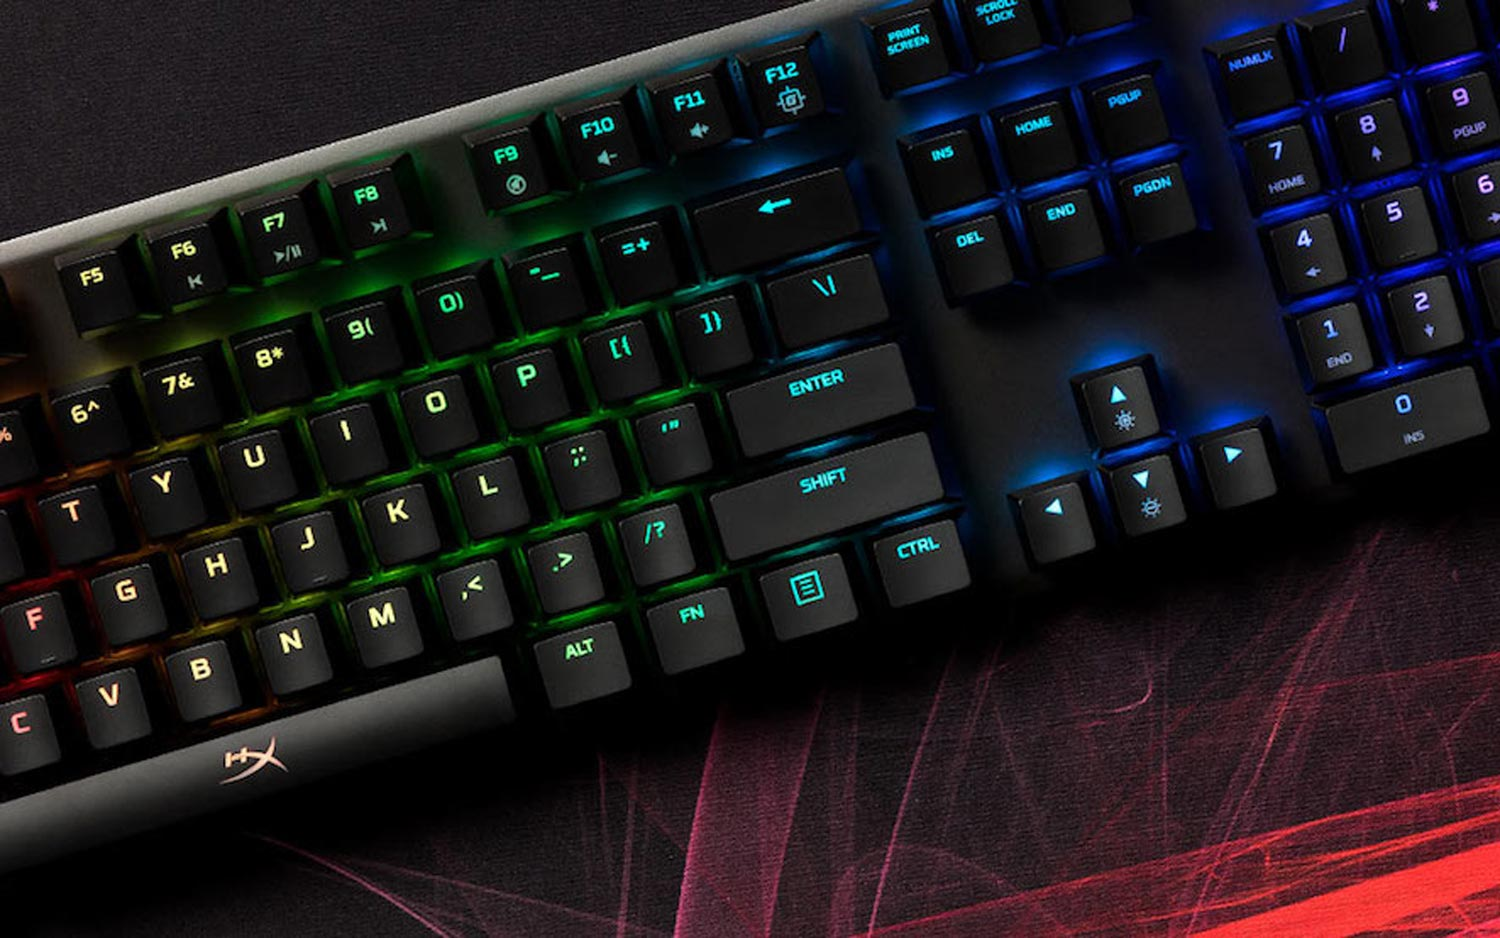 HyperX Alloy FPS RGB Review: Built for Speed, Not Comfort